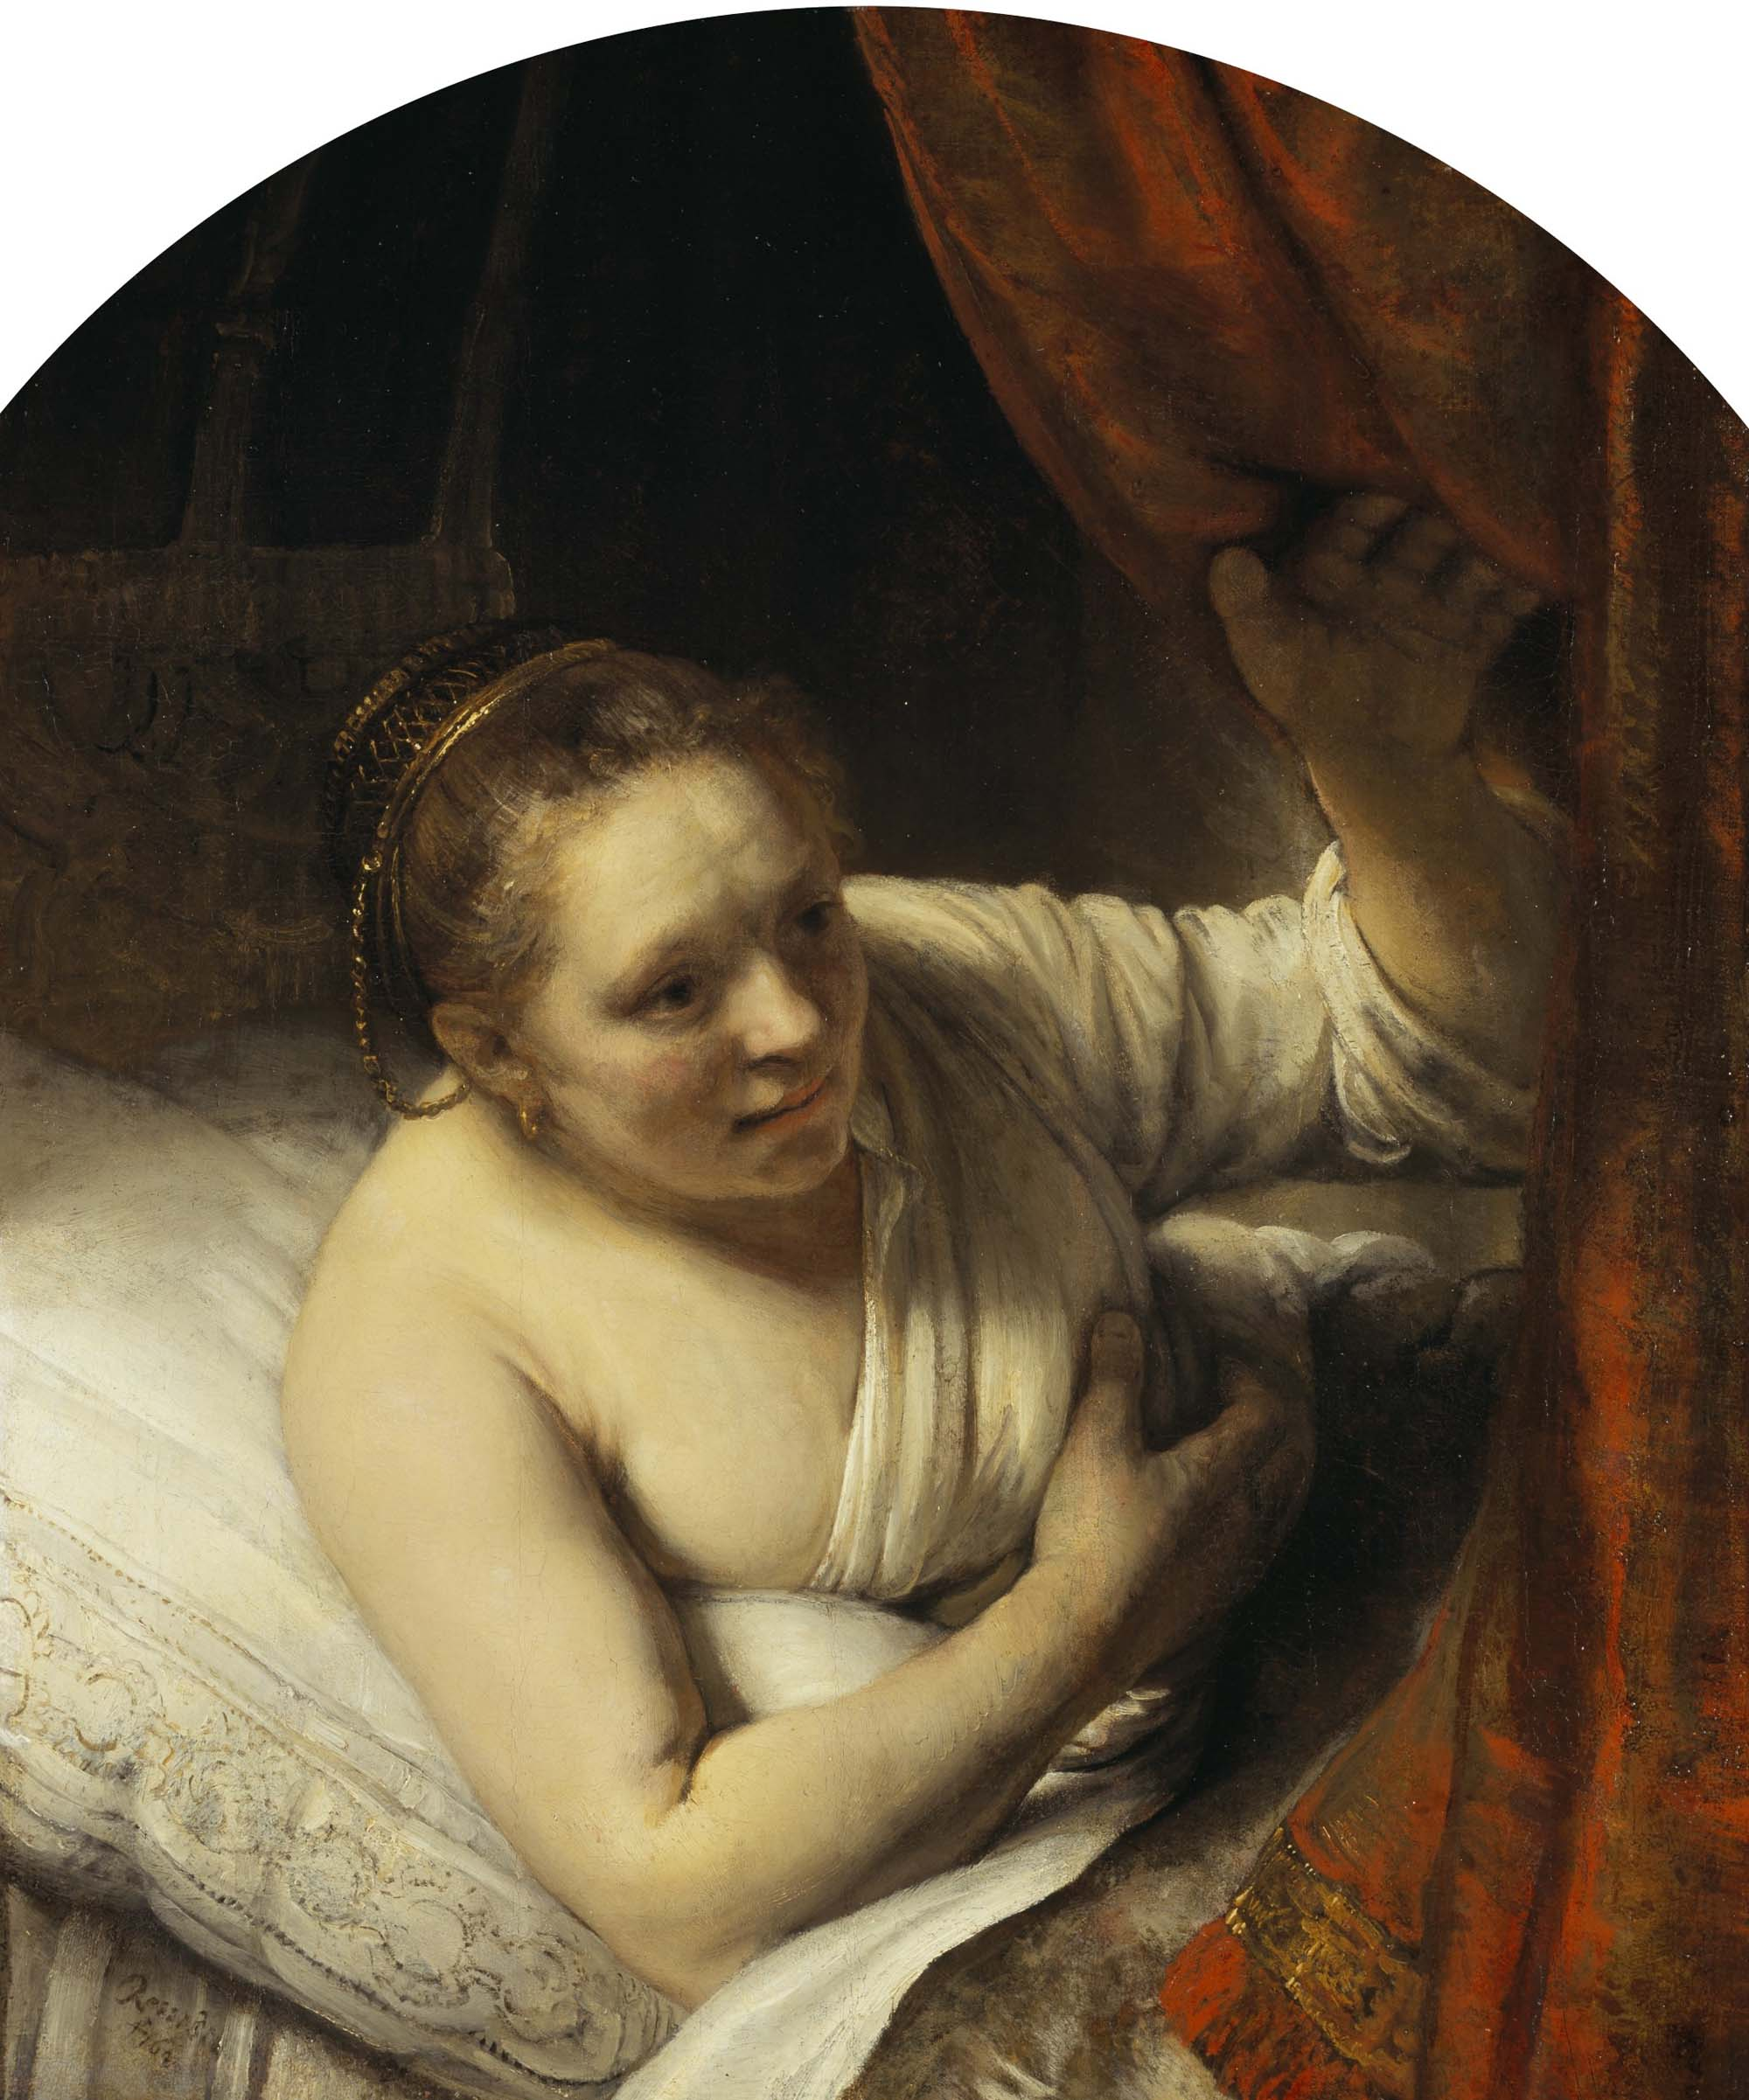 a painting by Rembrandt of a woman leaning out of bed